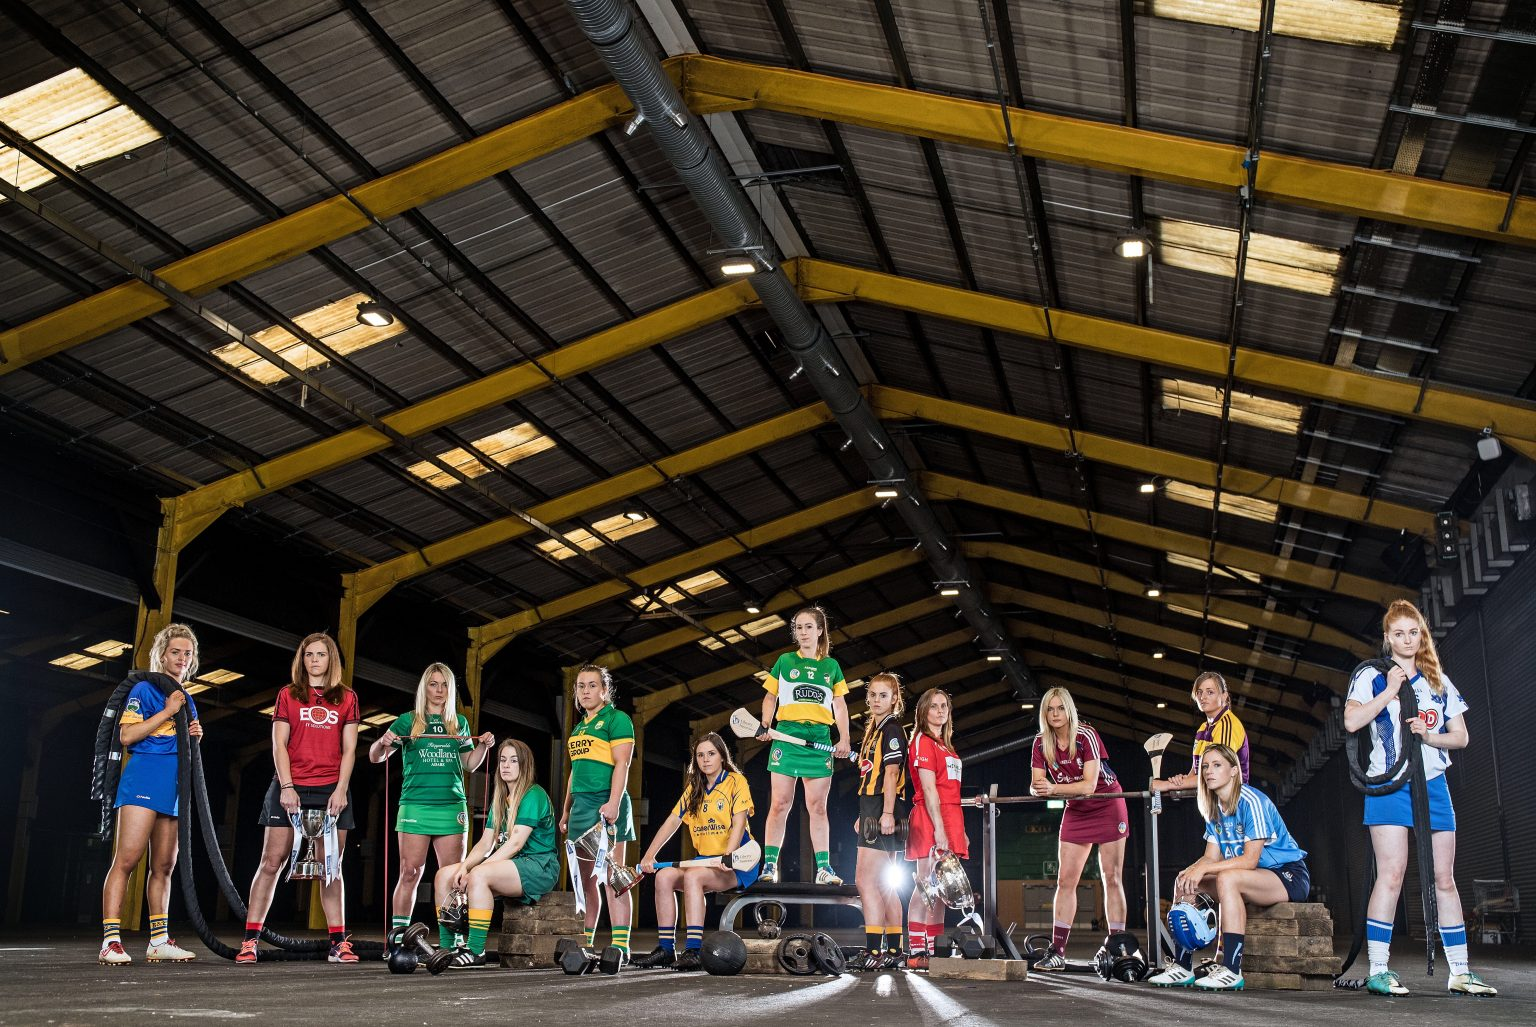 Promotional photo for the Liberty Insurance All Ireland Camogie Championship featuring 12 players in their county strips in a hangar